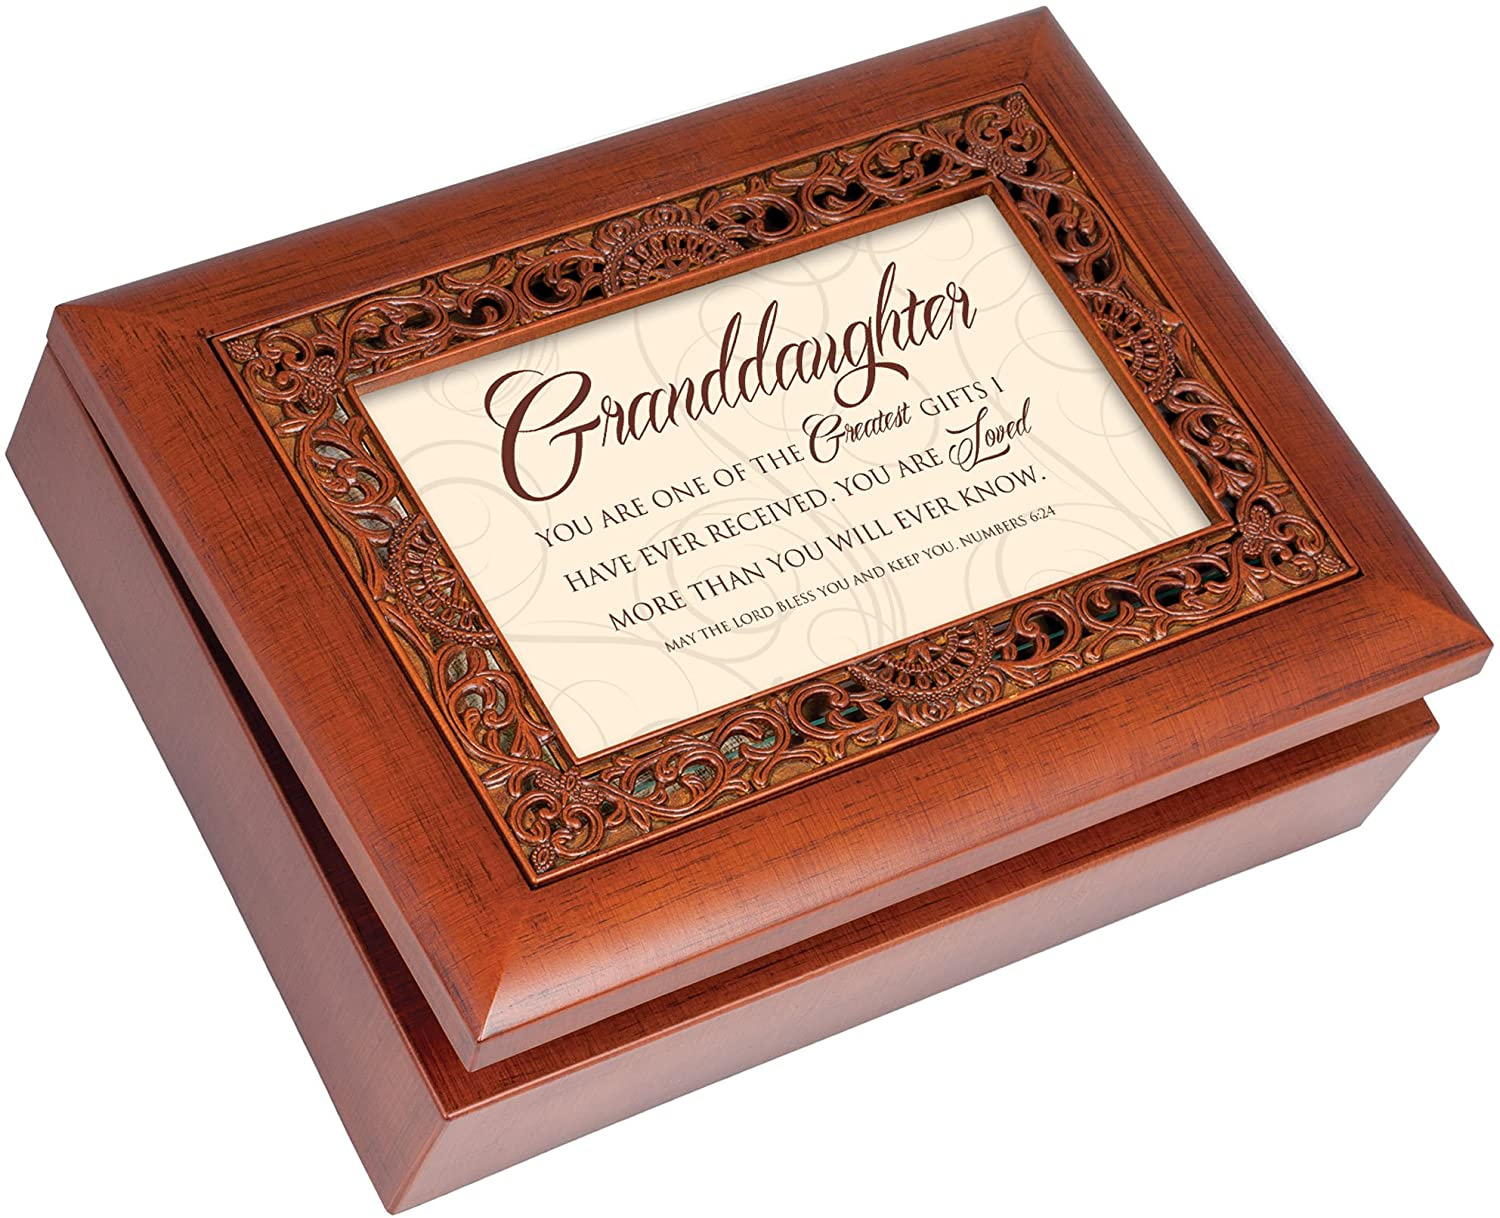 Cottage Garden Granddaughter Greatest Gifts Ever Woodgrain Inlay Jewelry Music Box Plays How Great Thou Art